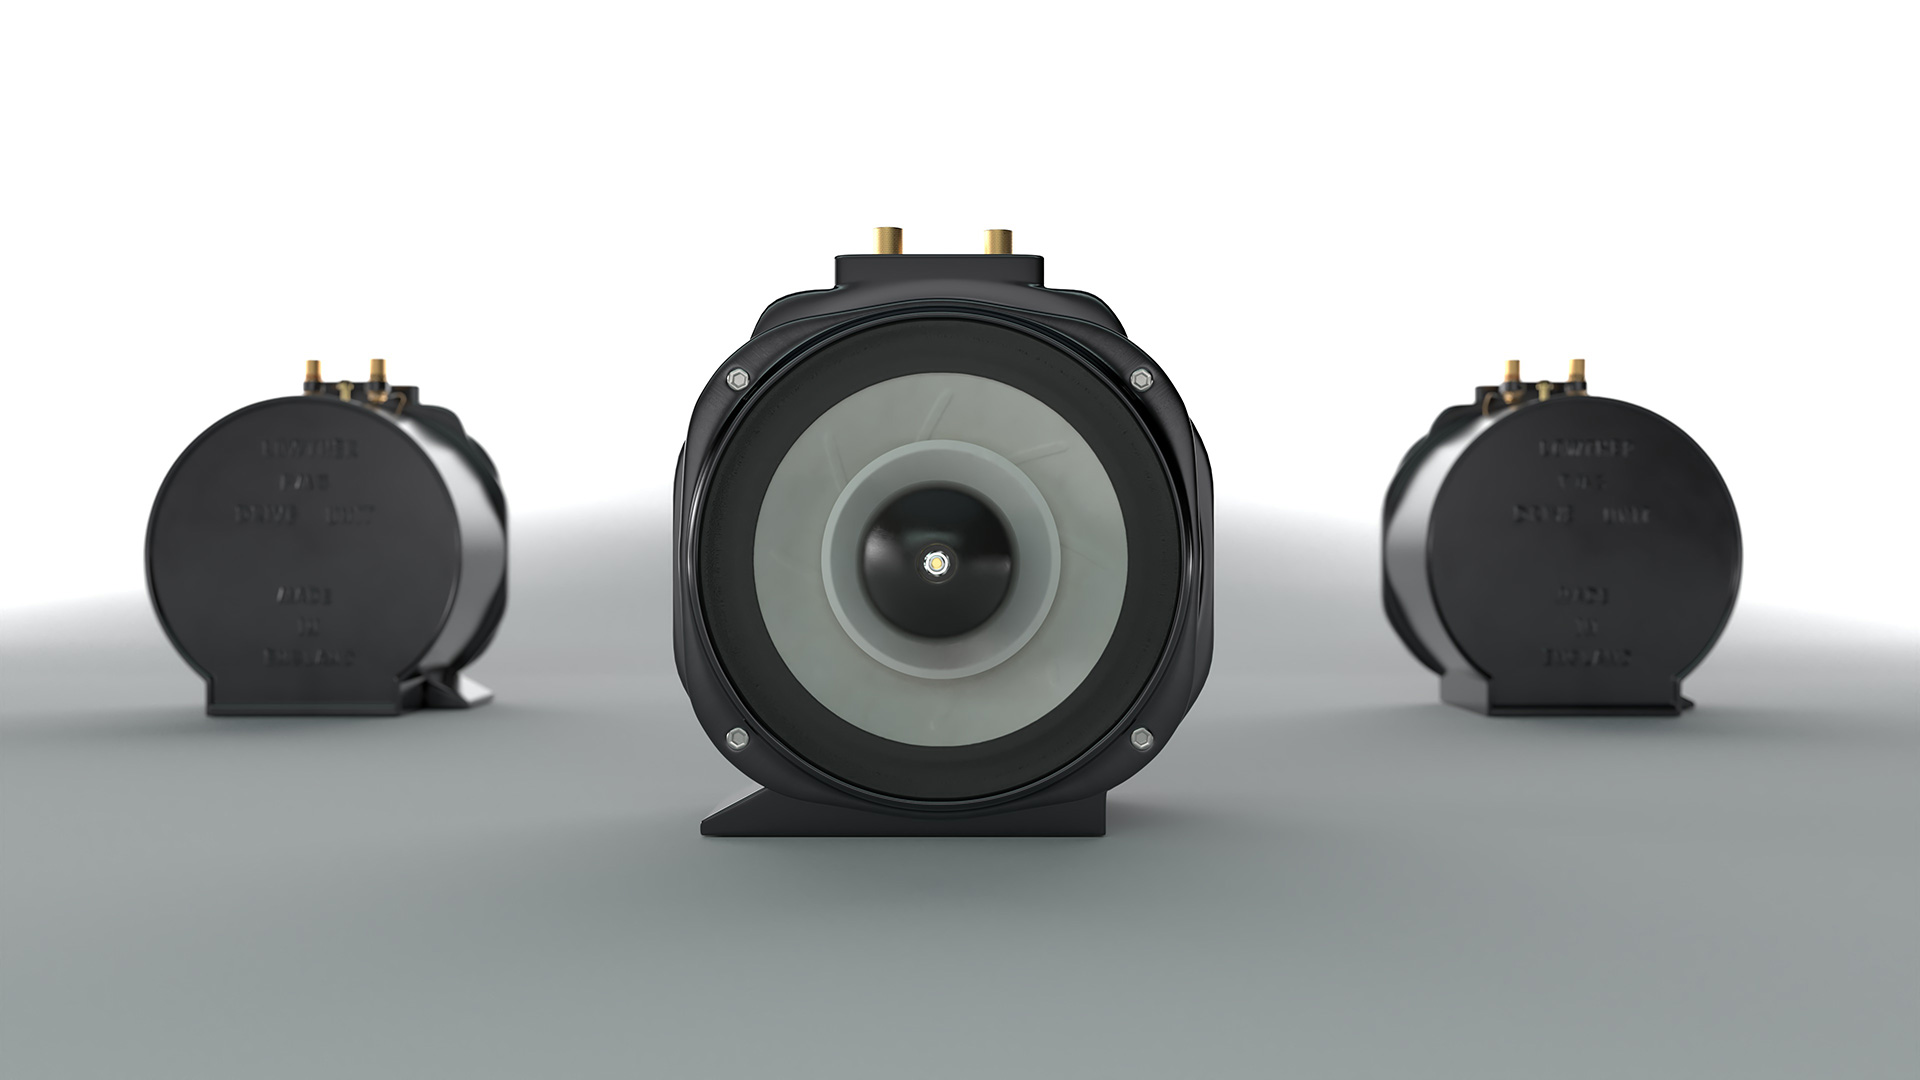 Images of the Lowther PM3A Loudspeaker Drive Units